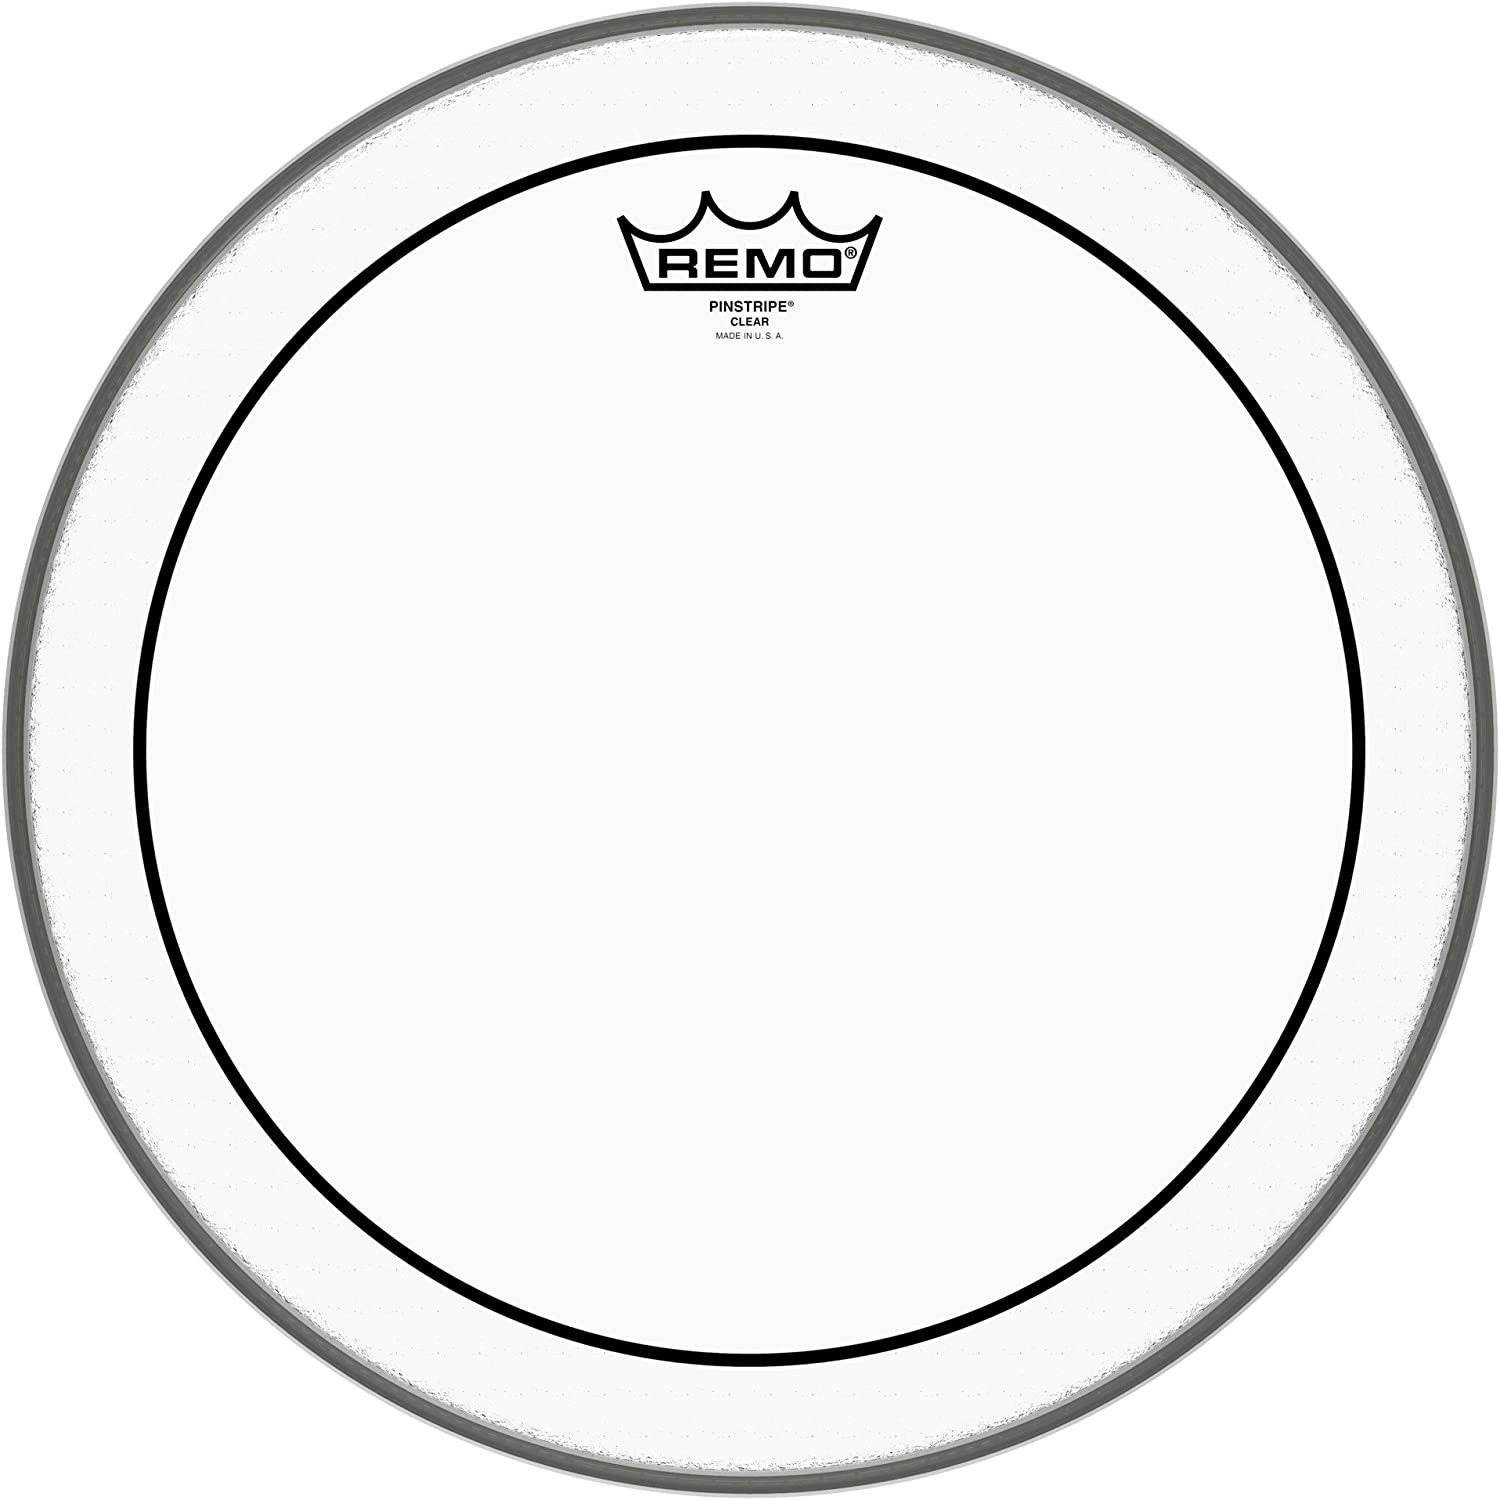 "Remo Pinstripe Clear Drumhead, 14"" 71xC73aTOXL"